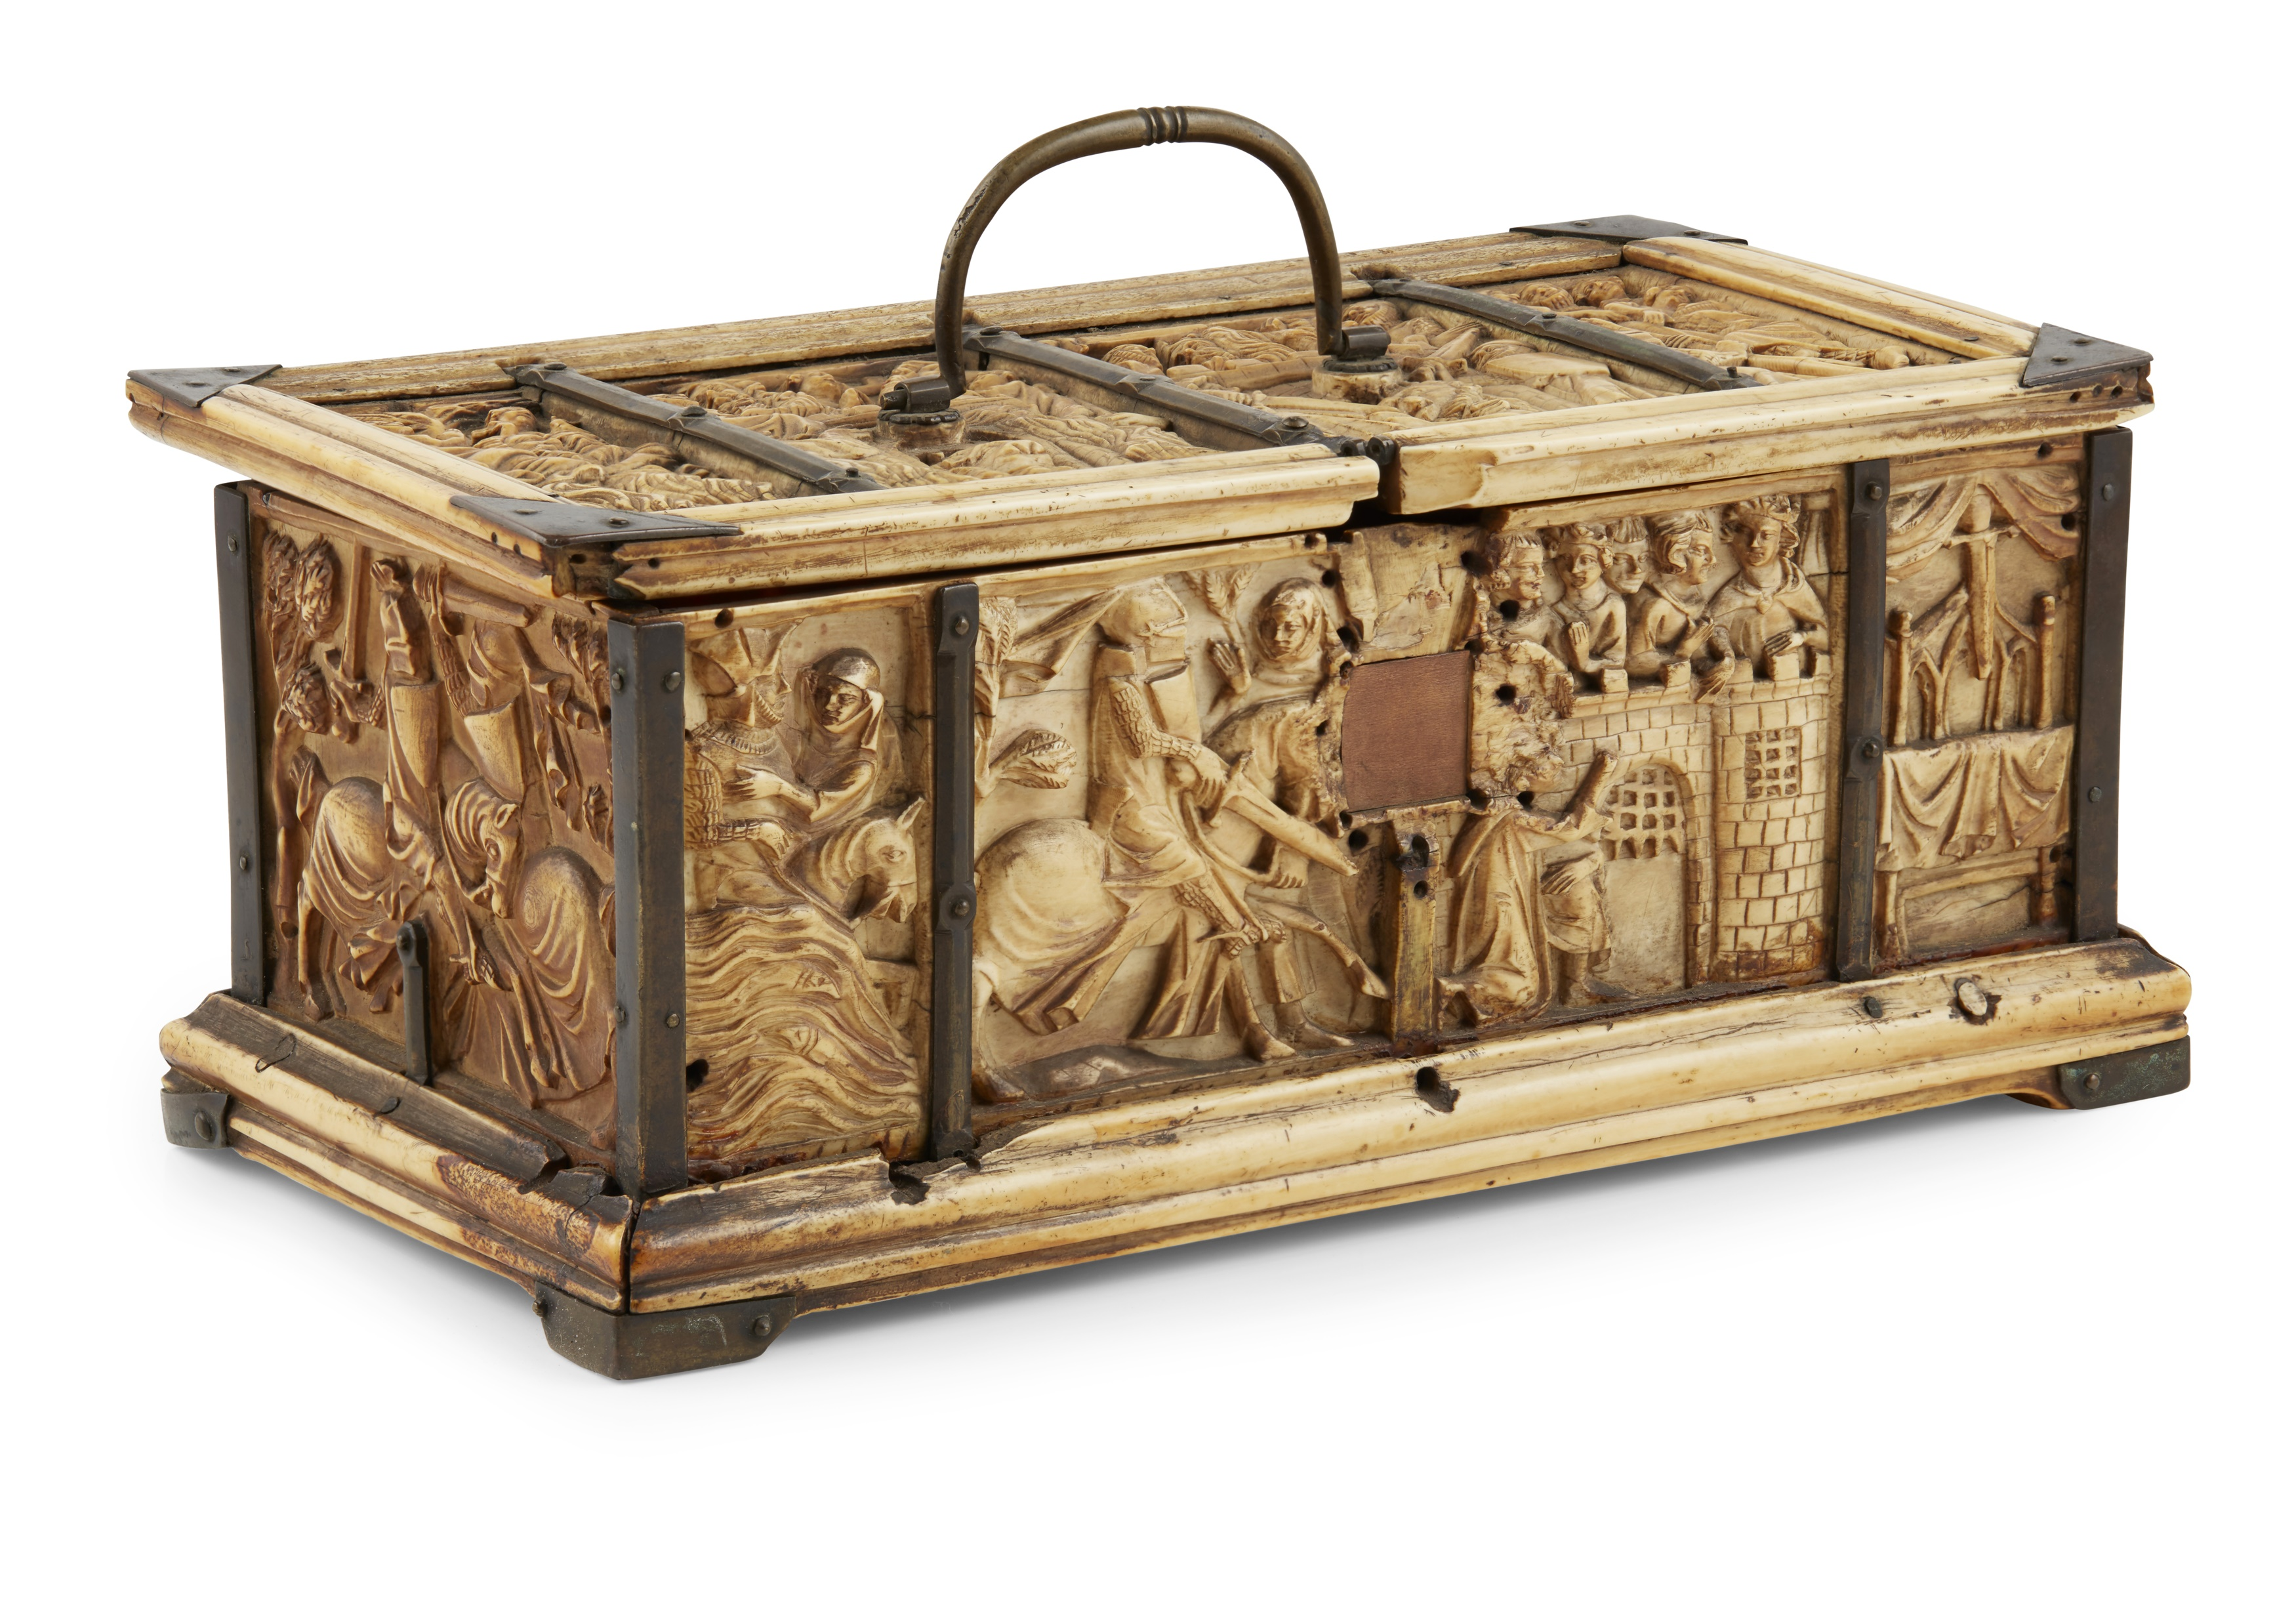 Y ◆ RARE AND IMPORTANT FRENCH GOTHIC IVORY COMPOSITE CASKET CIRCA 1330